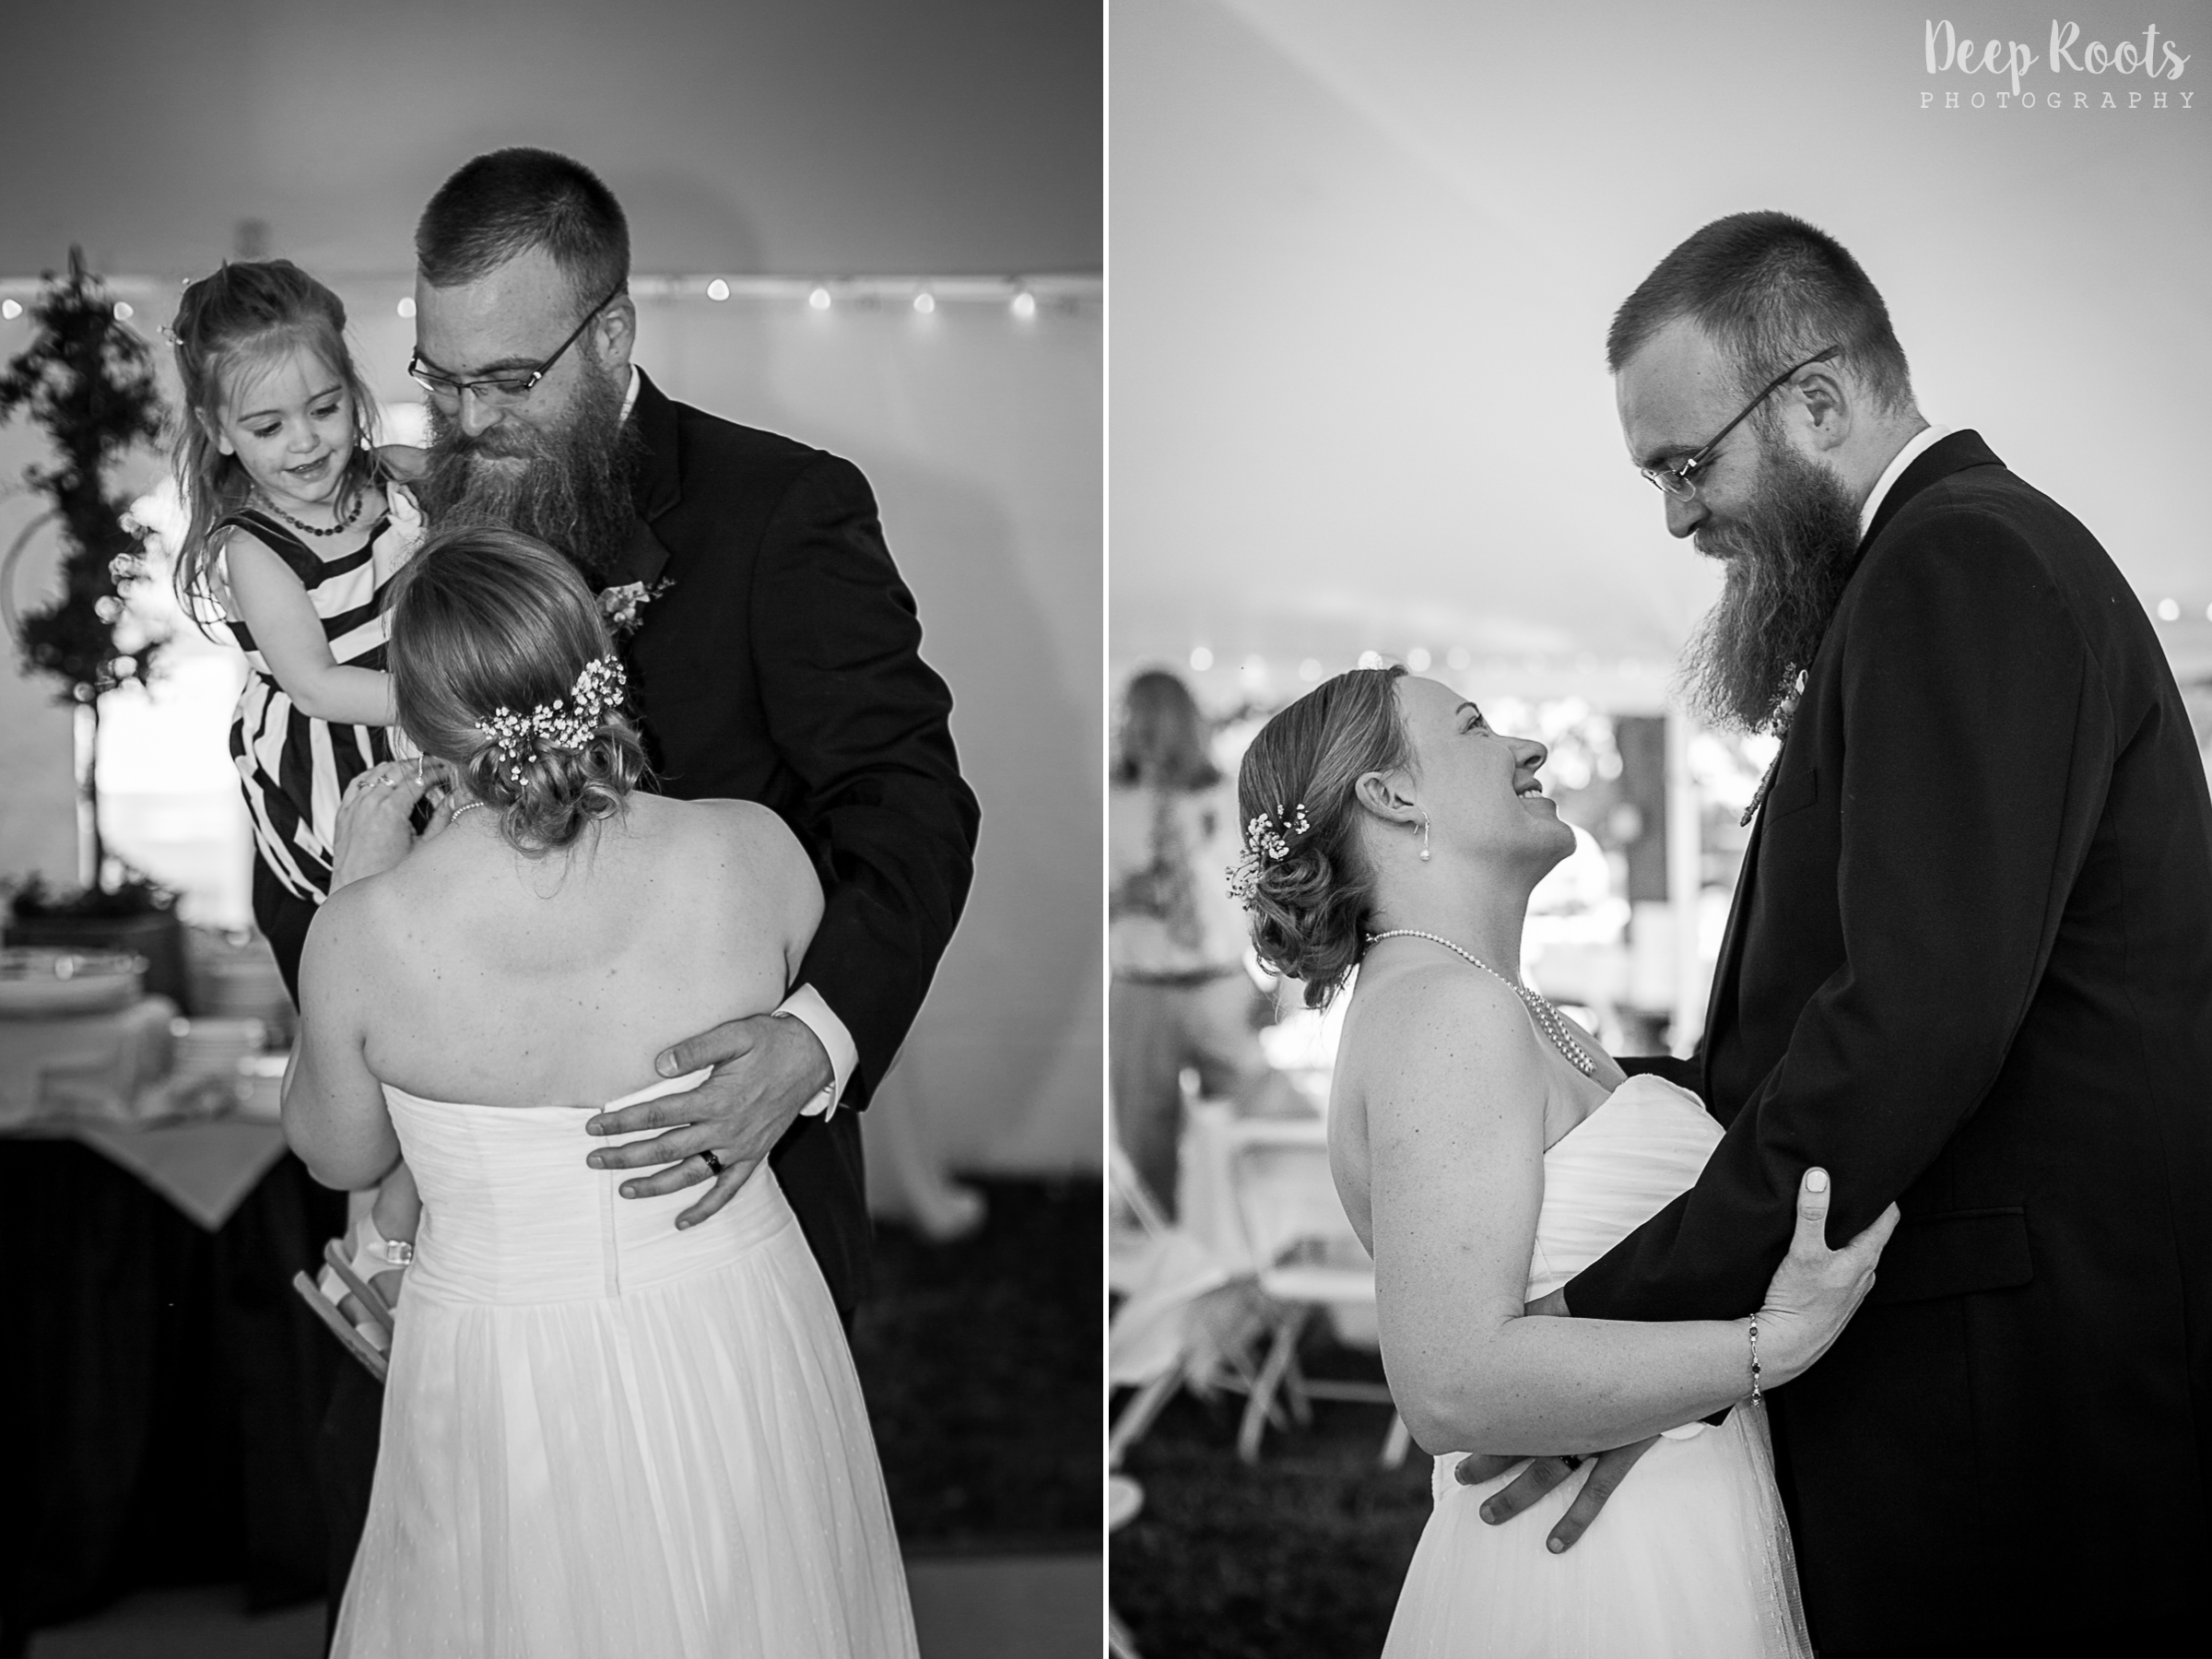 Lily joined Sarah and Todd for their first dance. So cute!